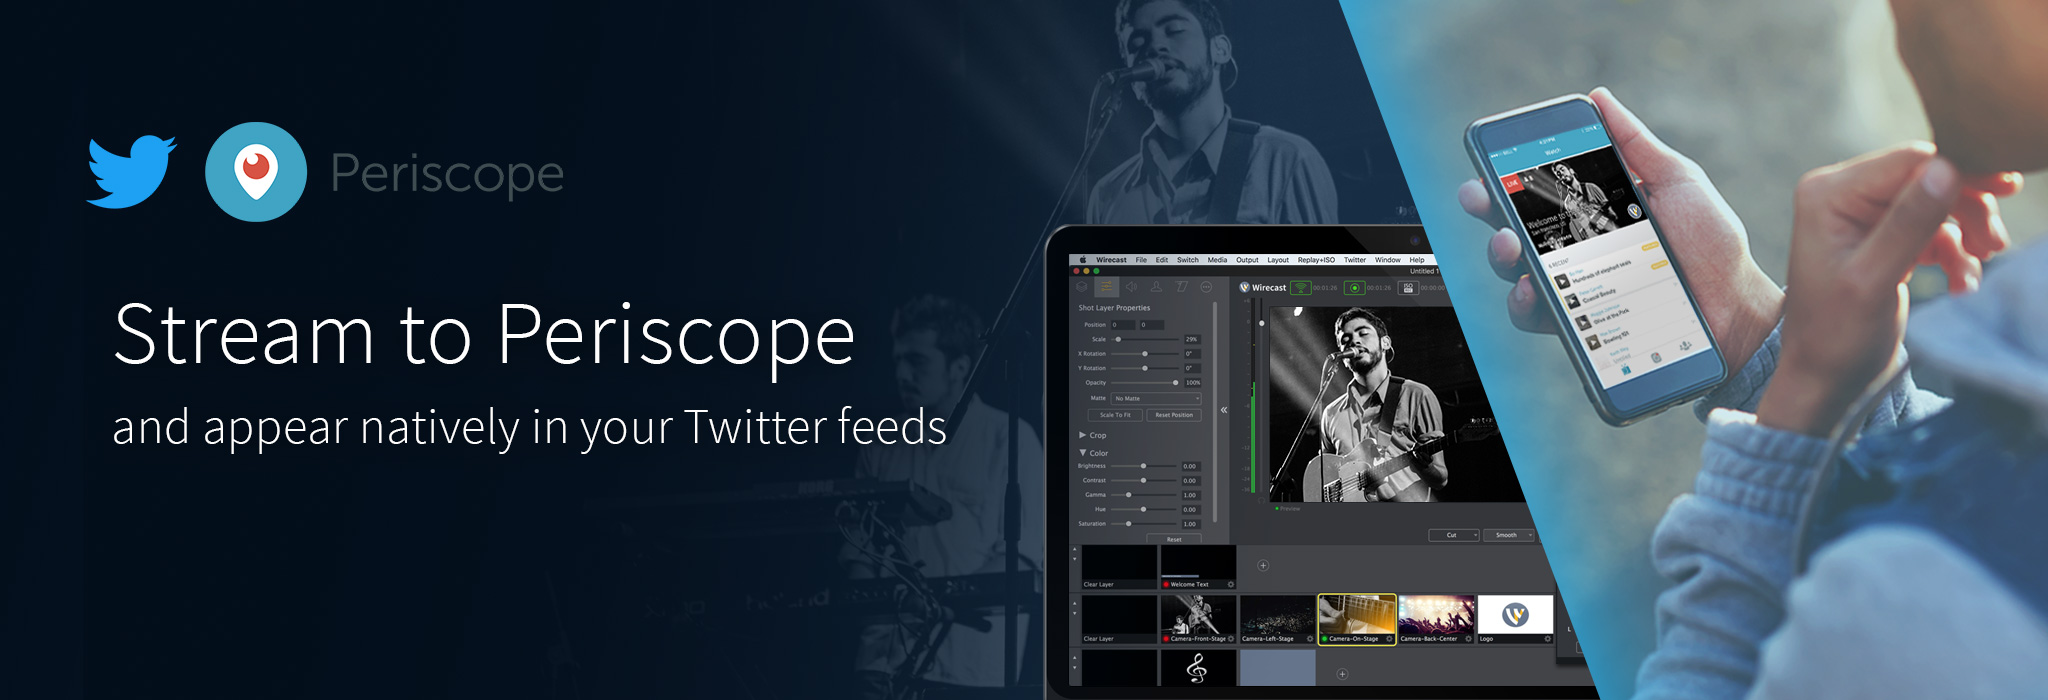 Stream to Periscope with Wirecast 7.5